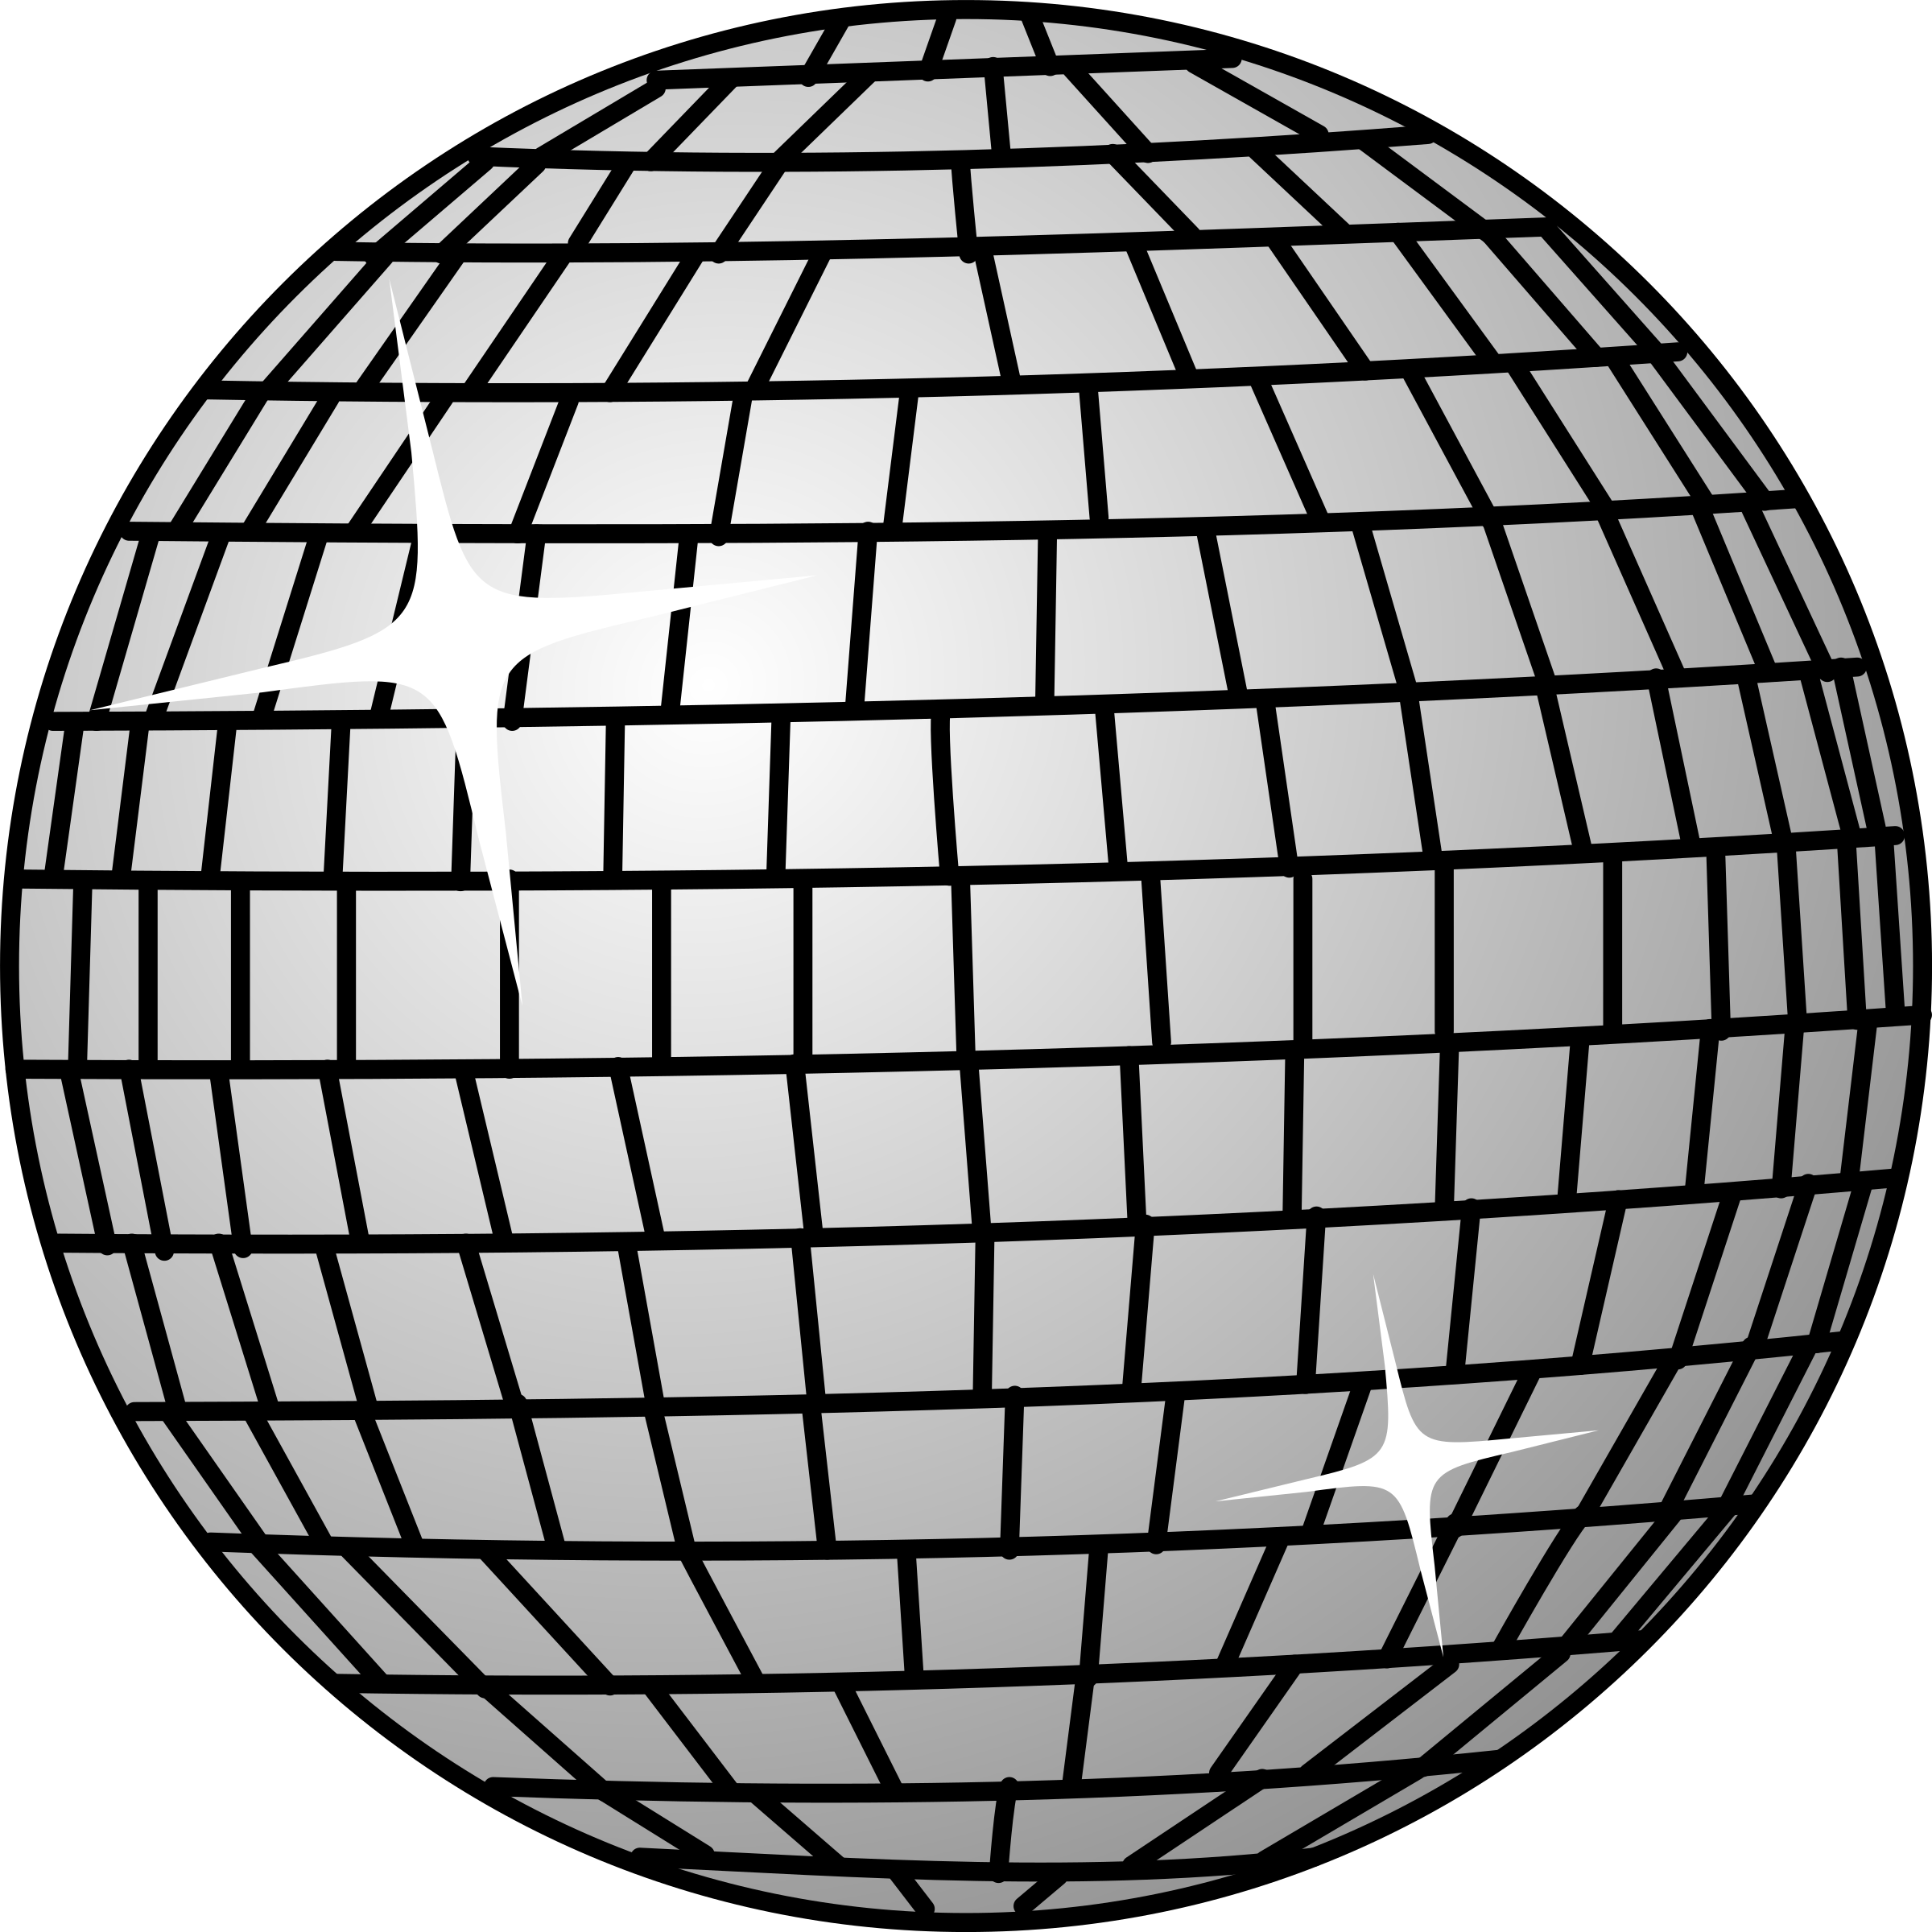 Disco ball by hs